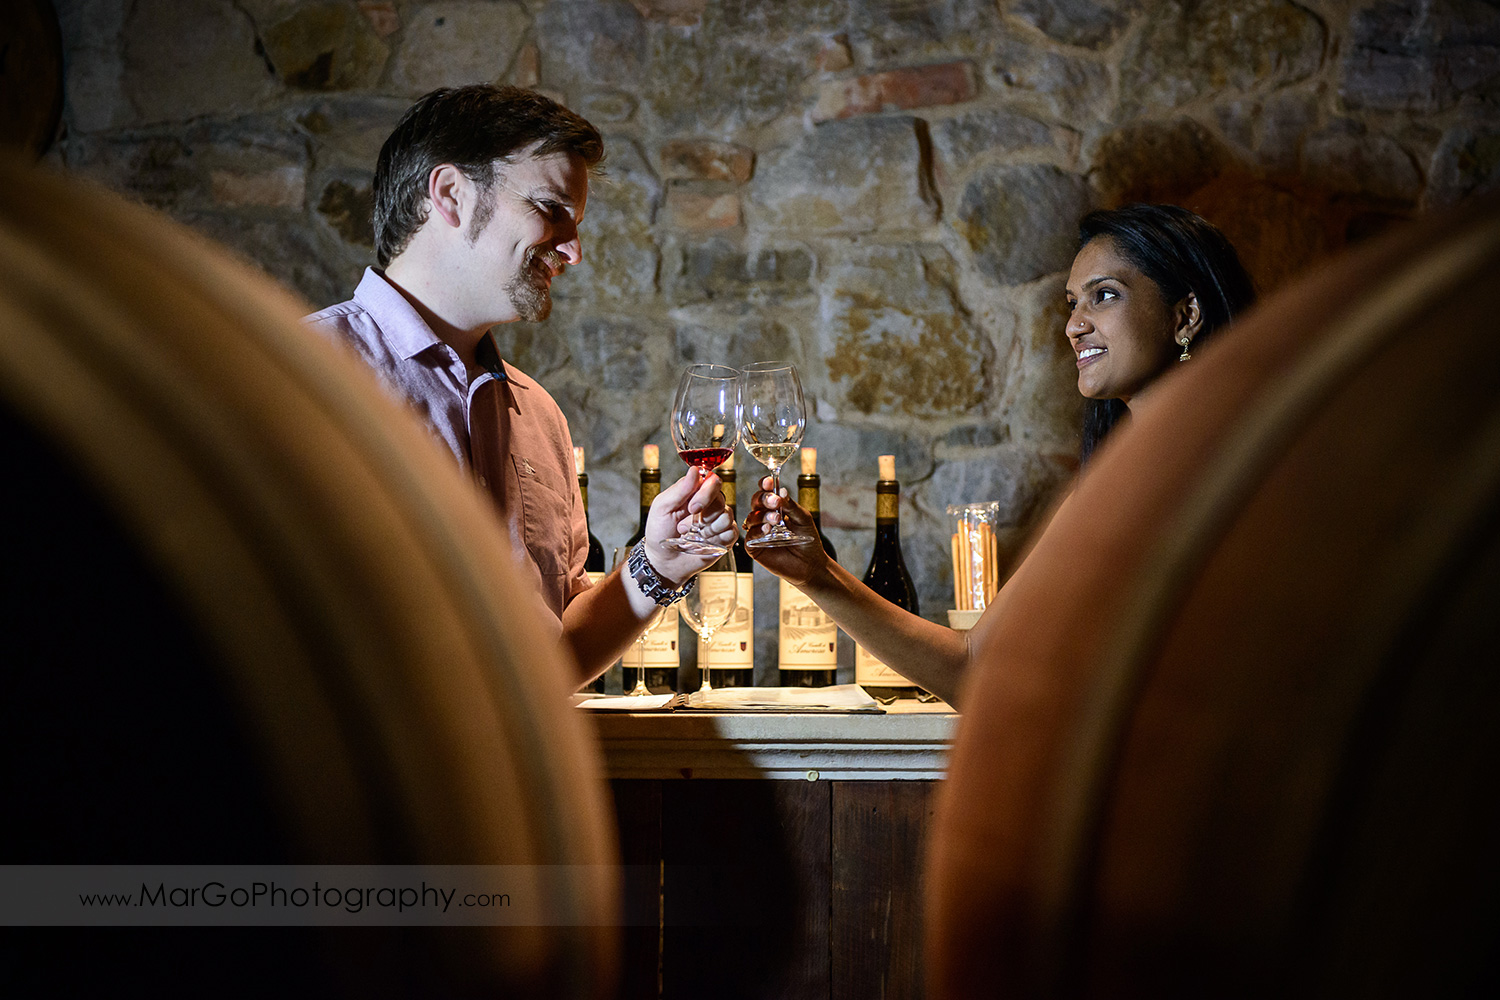 man in pink shirt and Indian woman in flower dress clink wine glasses in the wine cellar during engagement session at Castello di Amorosa in Calistoga